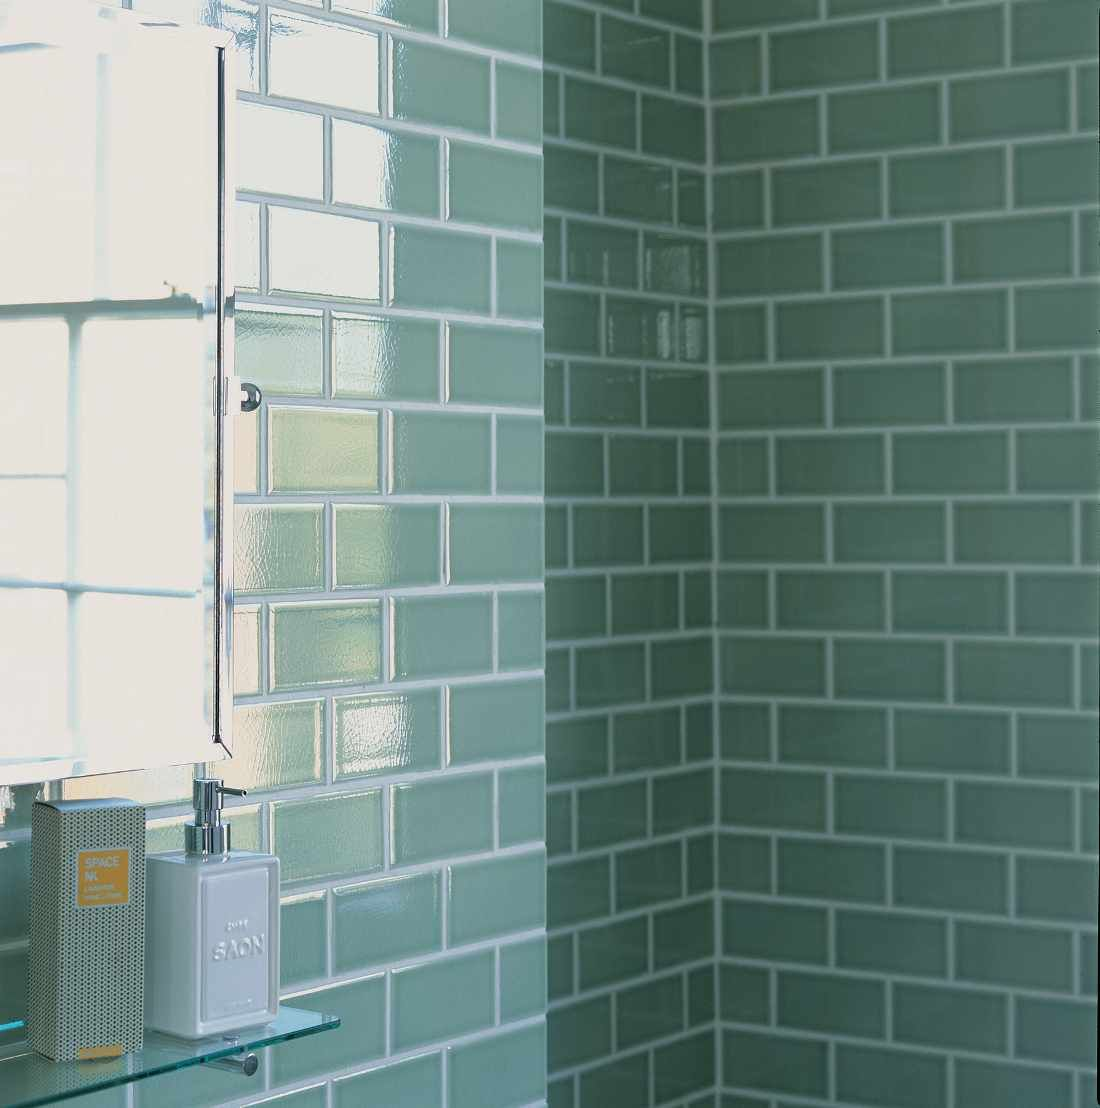 Captivating Bathroom Wall Tile Ideas   Http://www.rebeccacober.net/11009 Nice Look